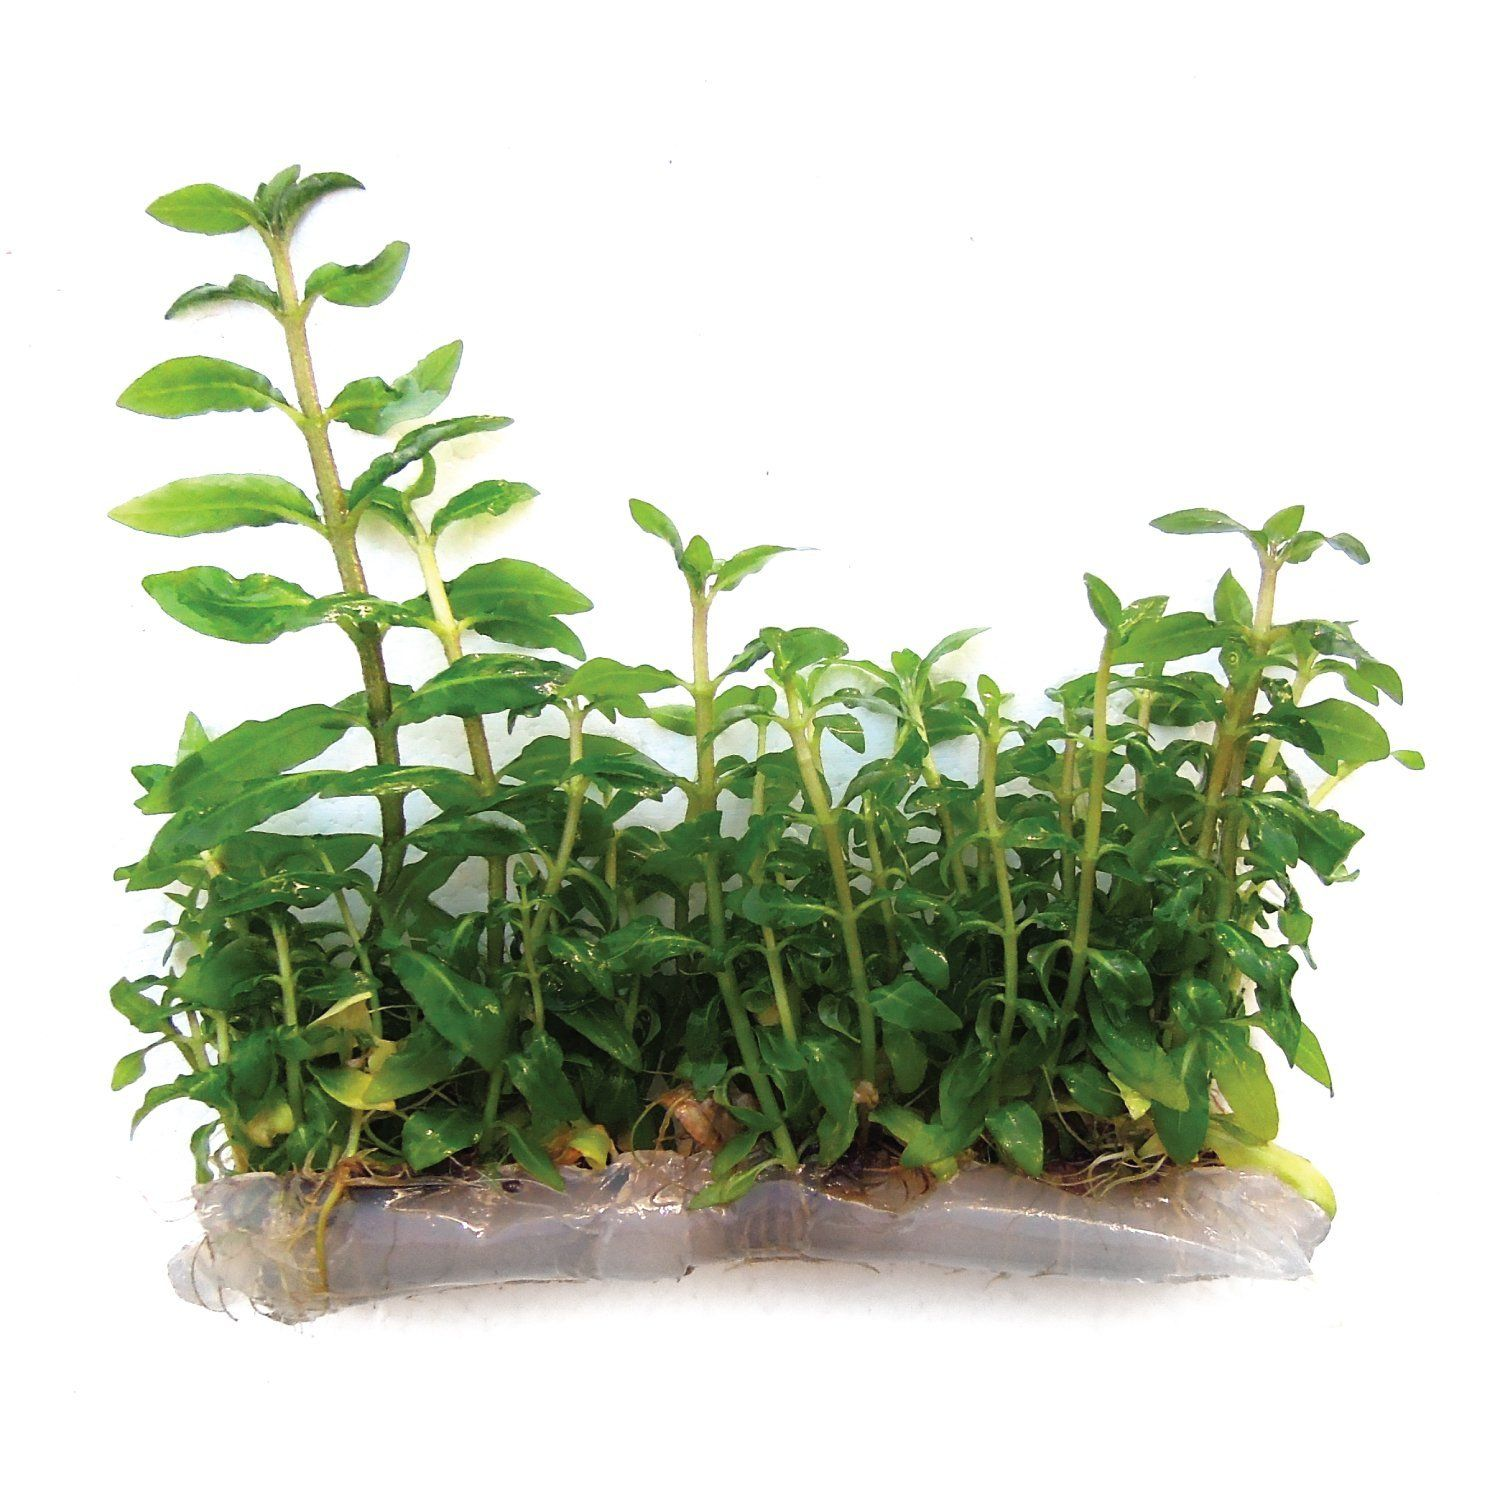 Amazoncom Substratesource Staurogyne Repens Low Grow Live Aquarium Plant